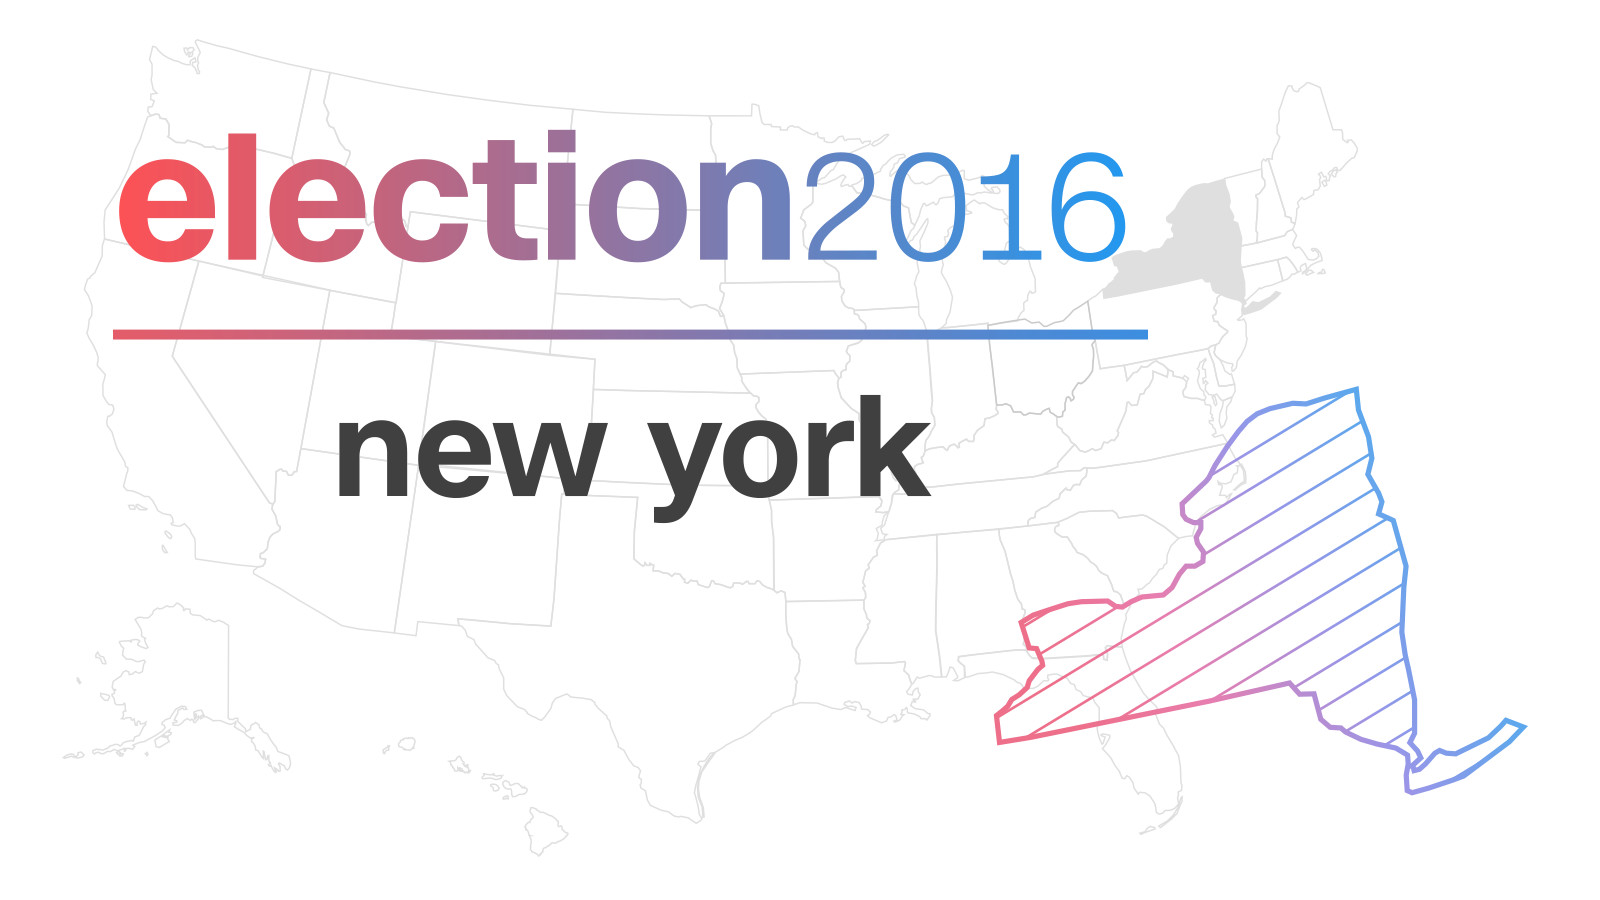 new york election results 2016. Black Bedroom Furniture Sets. Home Design Ideas